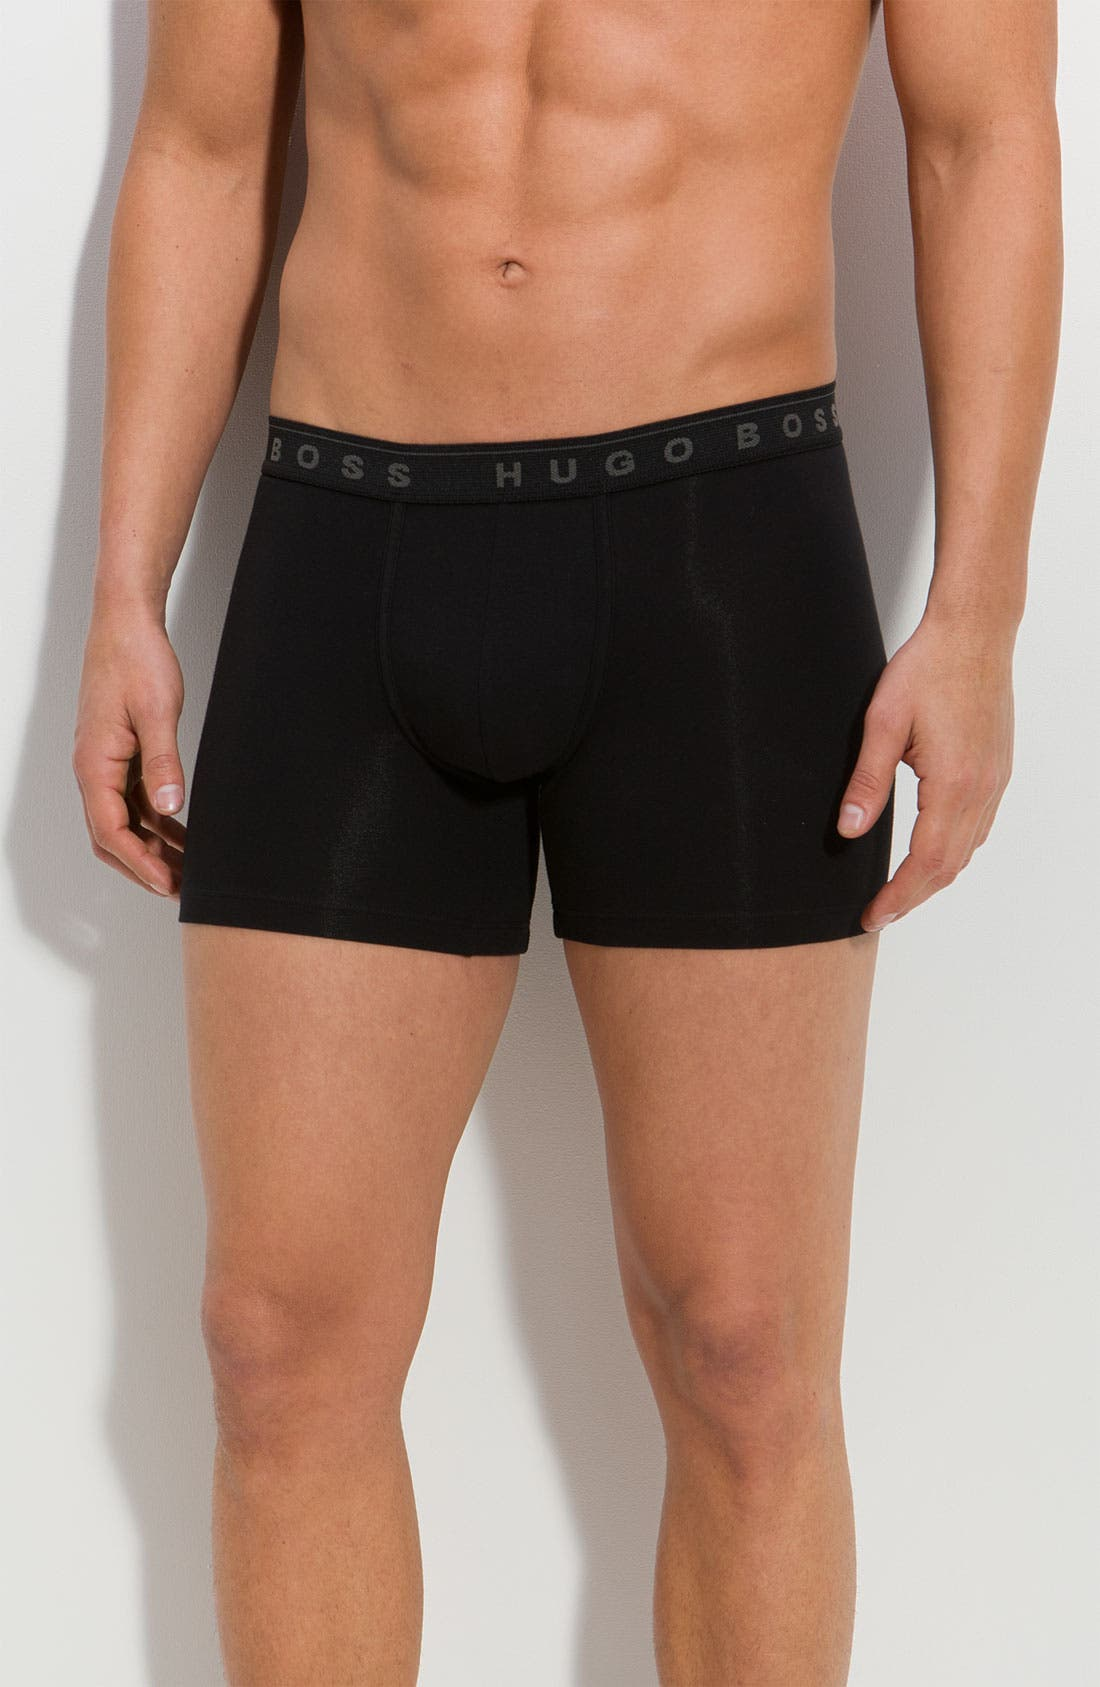 Main Image - BOSS Black 'Cyclist' Boxer Briefs (3-Pack)